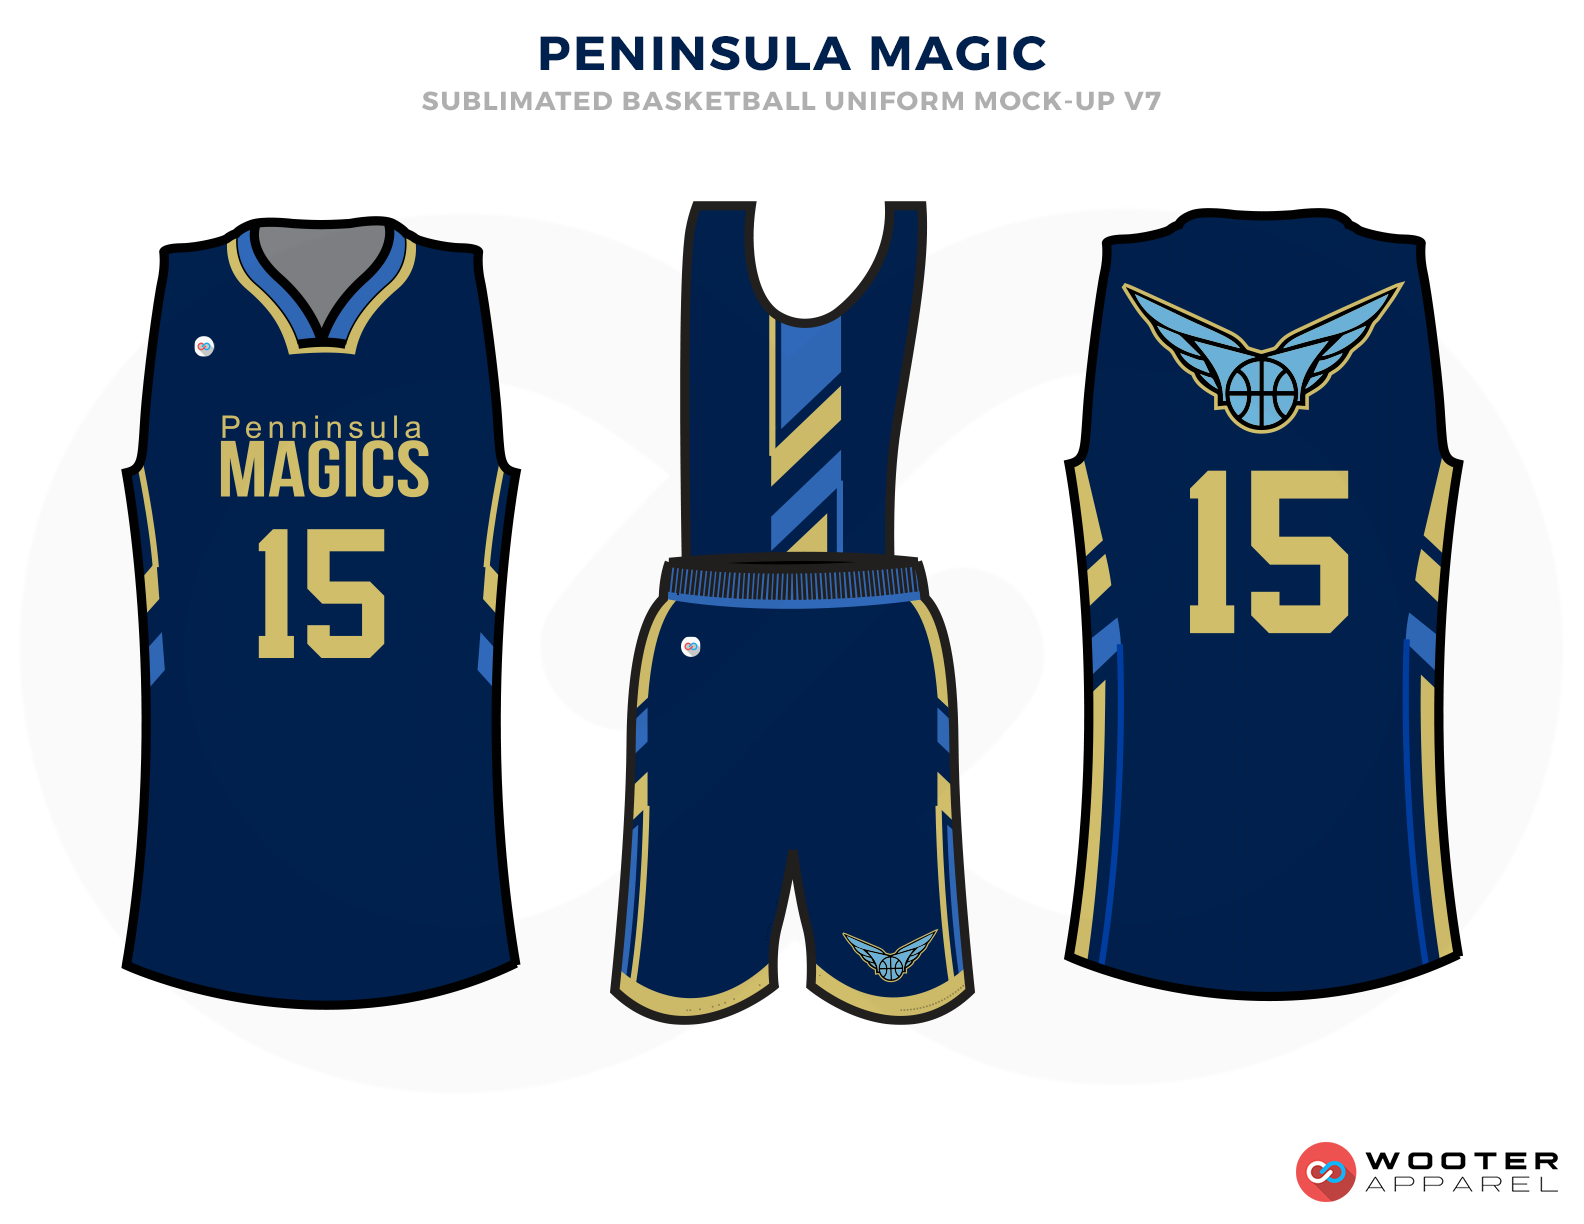 PENINSULE MAGIC Blue and Golden Basketball Uniforms, Jersey and Shorts